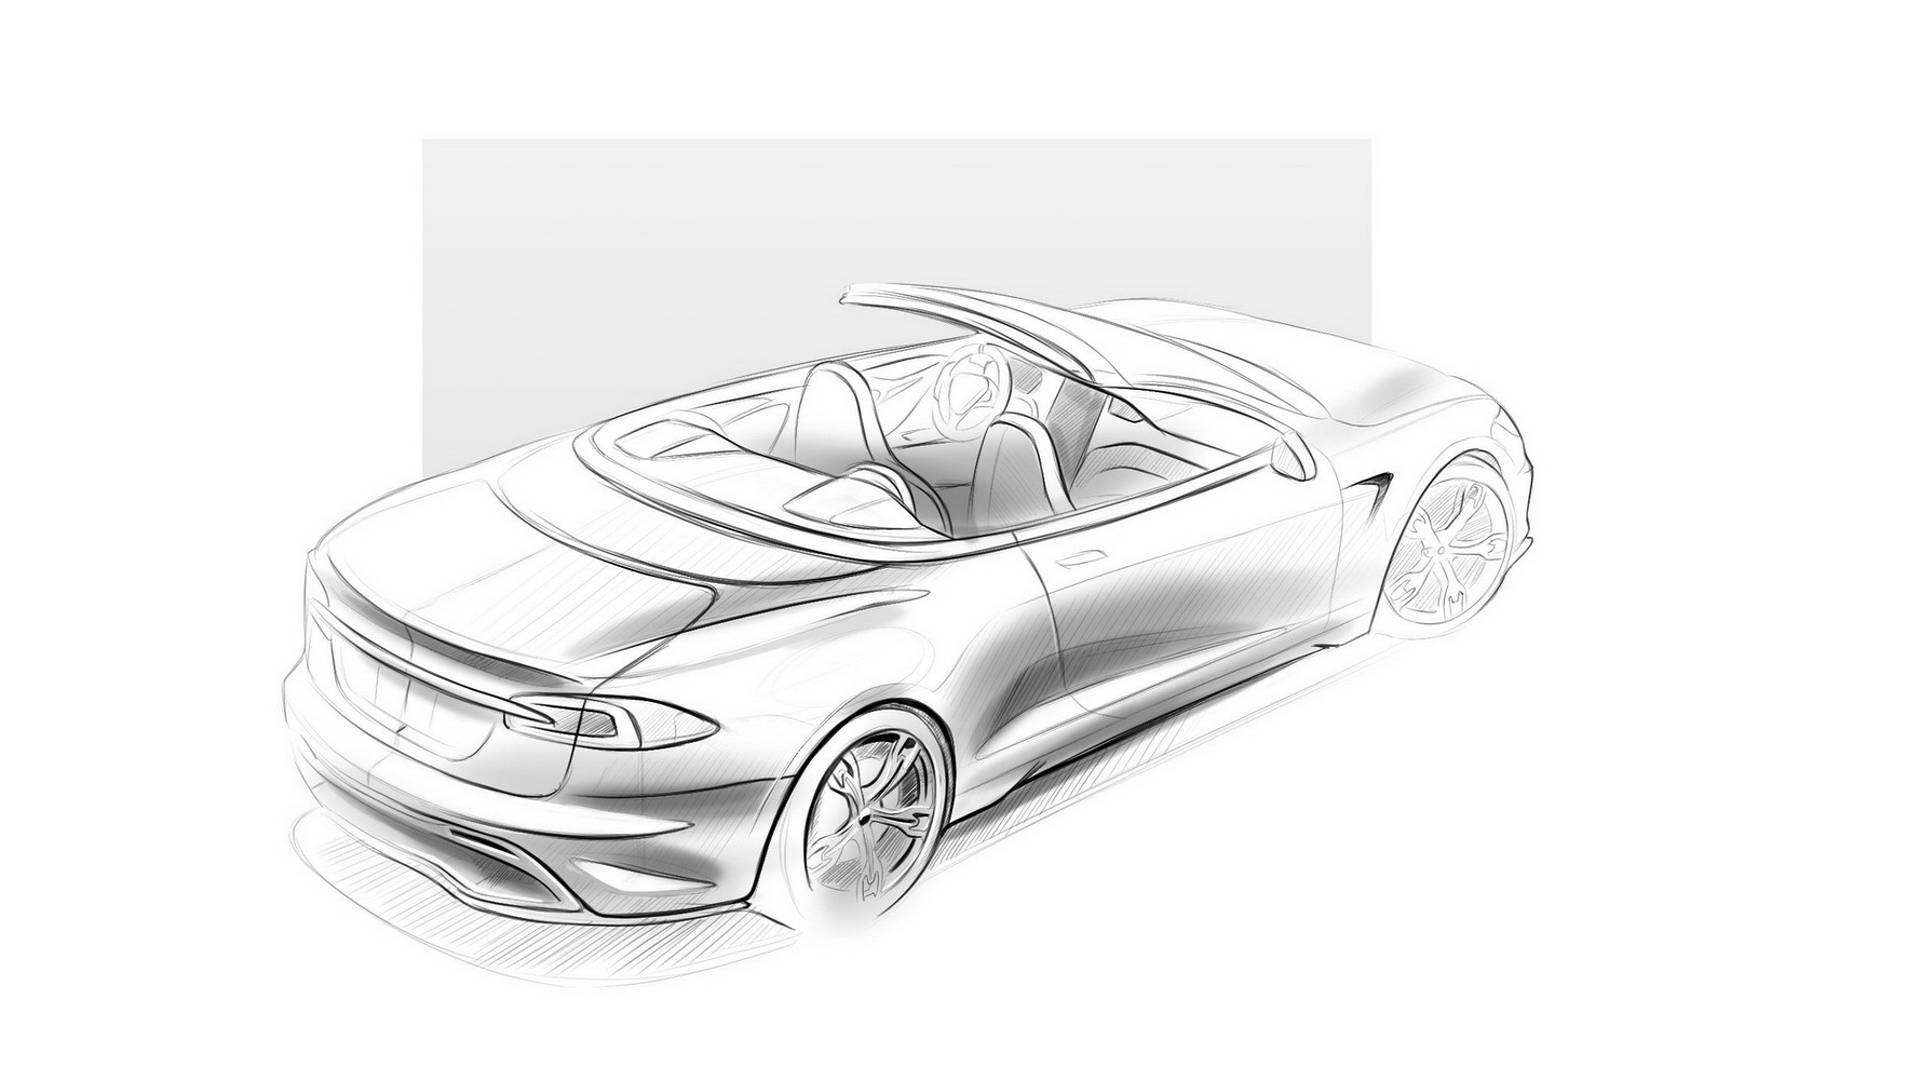 ares-design-tesla-model-s-convertible (1)